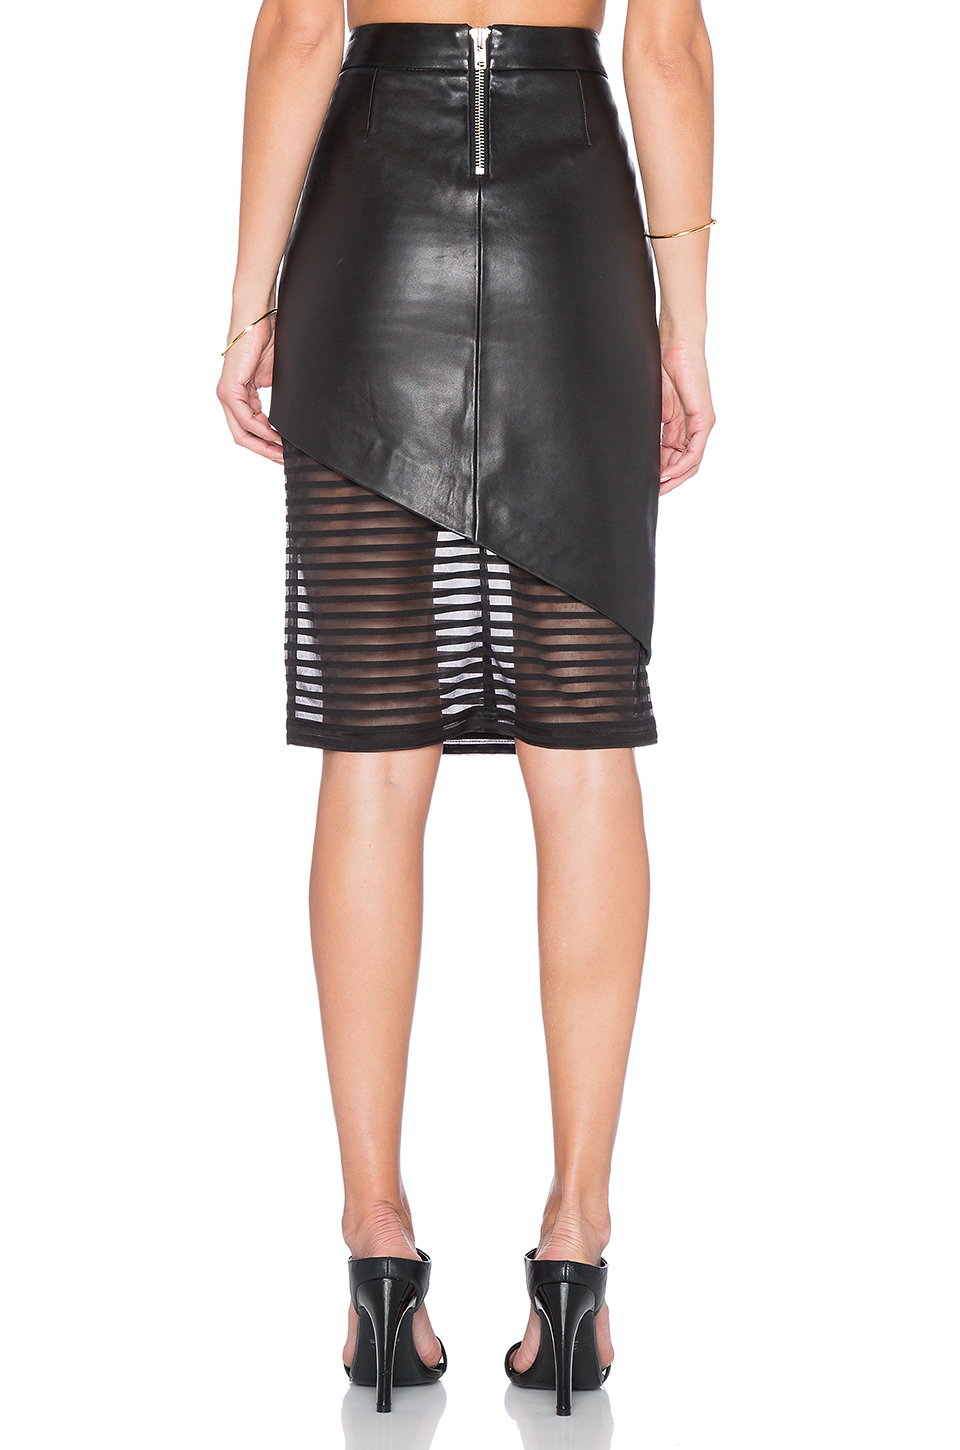 39d1f34013 Gallery. Previously sold at: REVOLVE · Women's Leather Skirts Women's Black  Leather Skirts